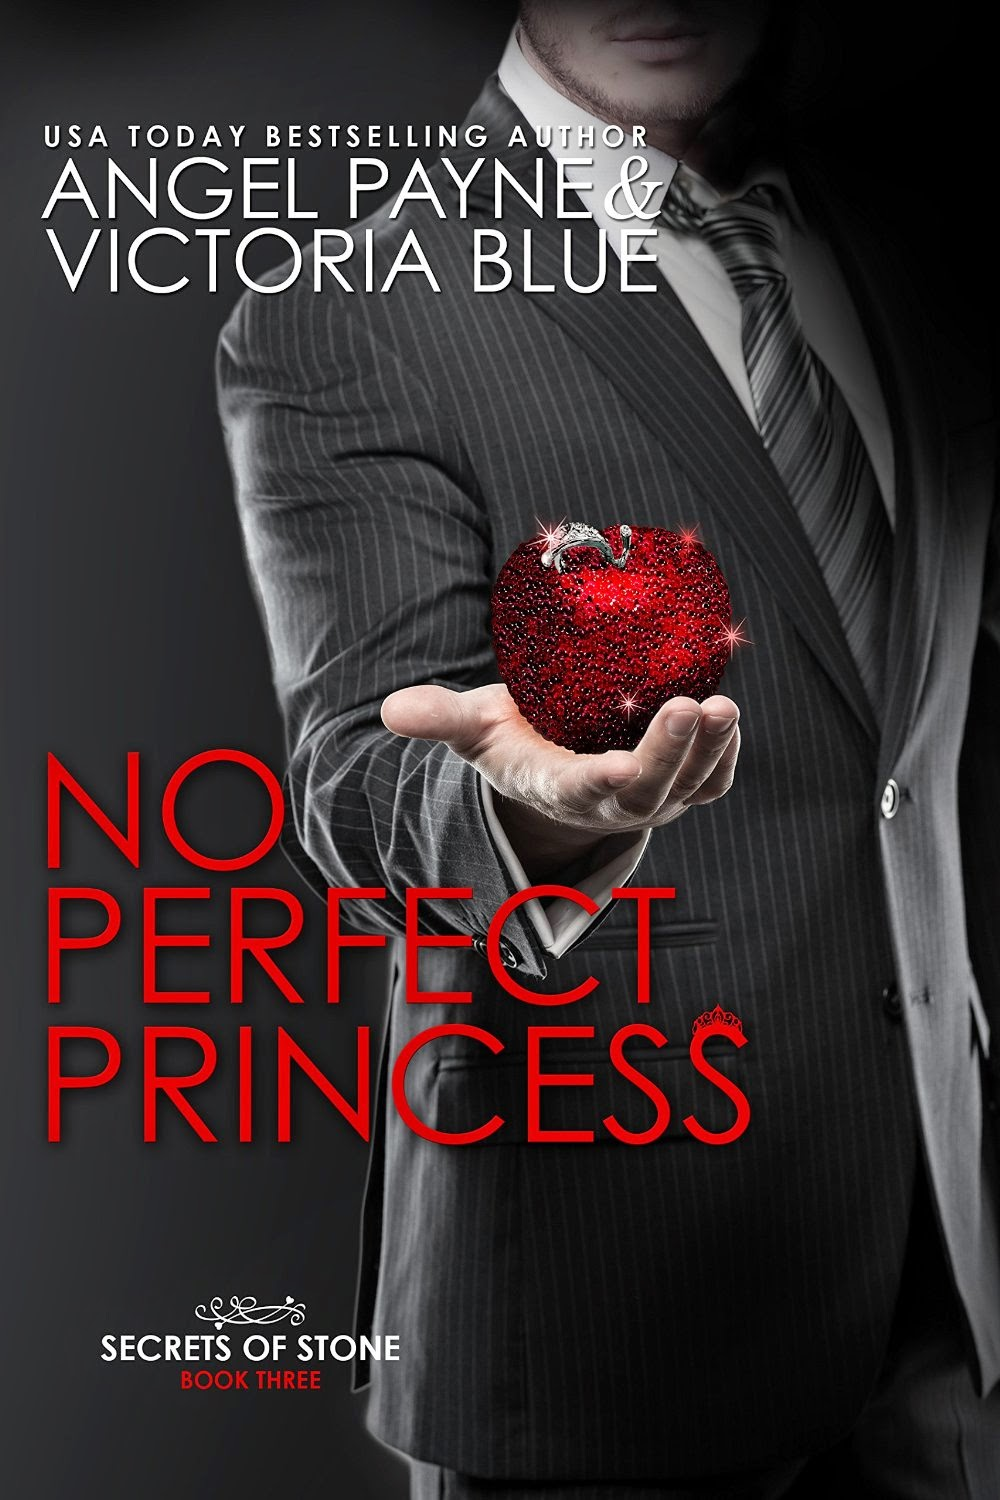 No Perfect Princess (Secrets of Stone Book 3) by Angel Payne & Victoria Blue (CR)